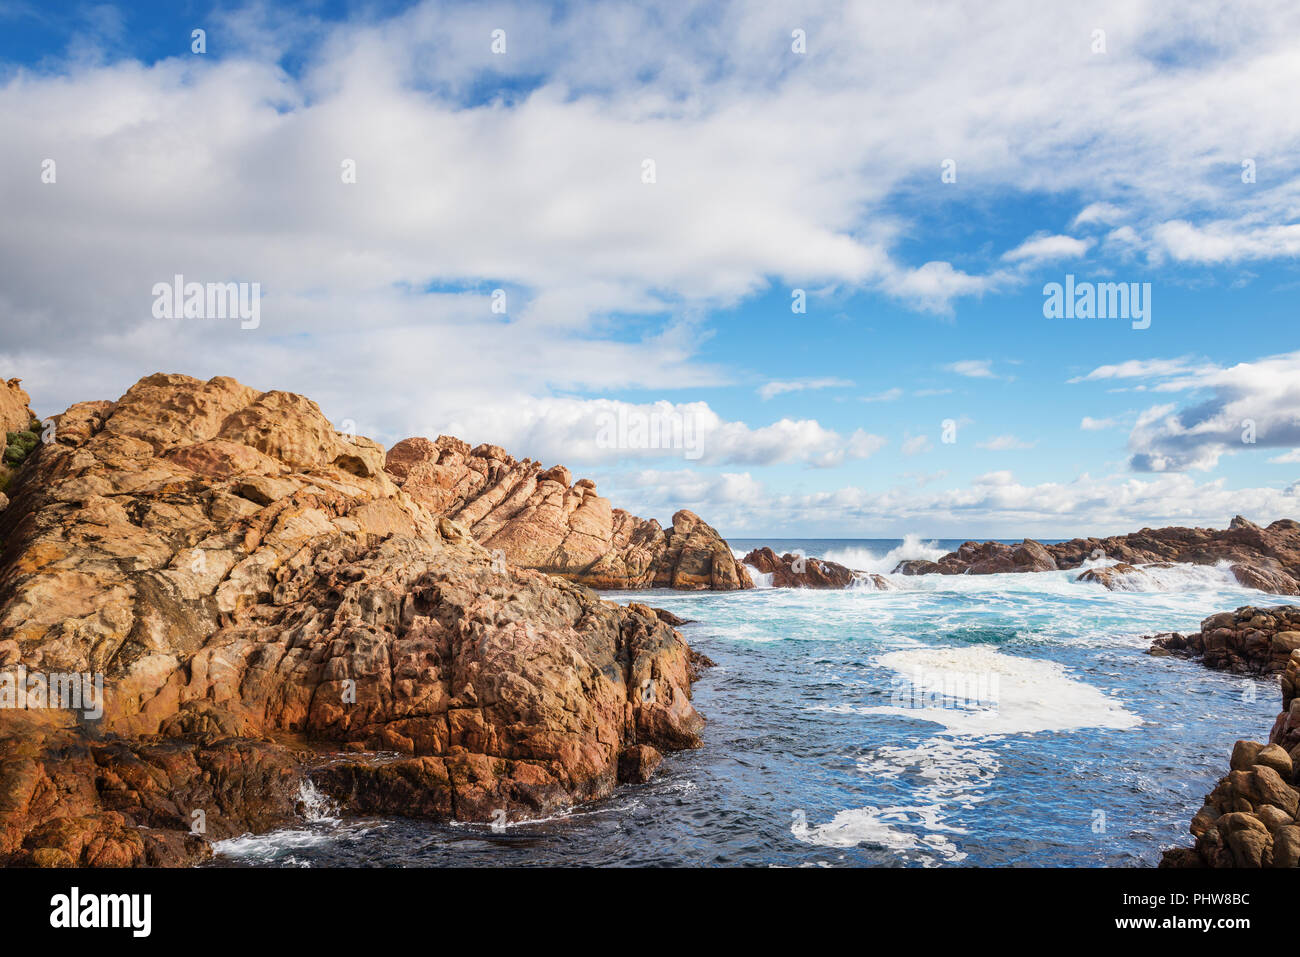 famous rocks in  canal of the coast in Busselton - Stock Image